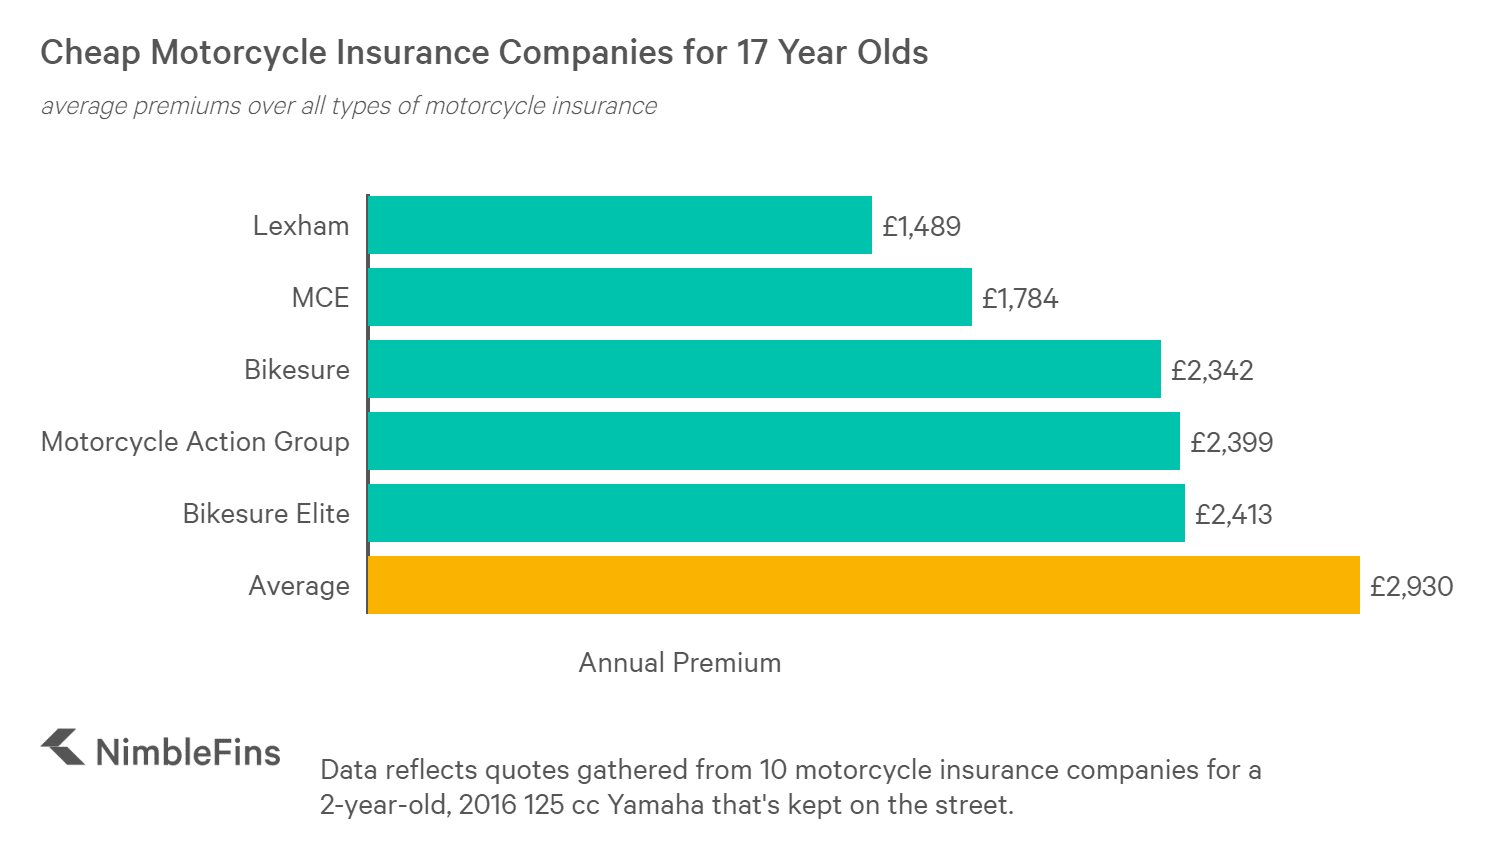 chart showing the cheapest motorcycle insurance companies for a 17 year old